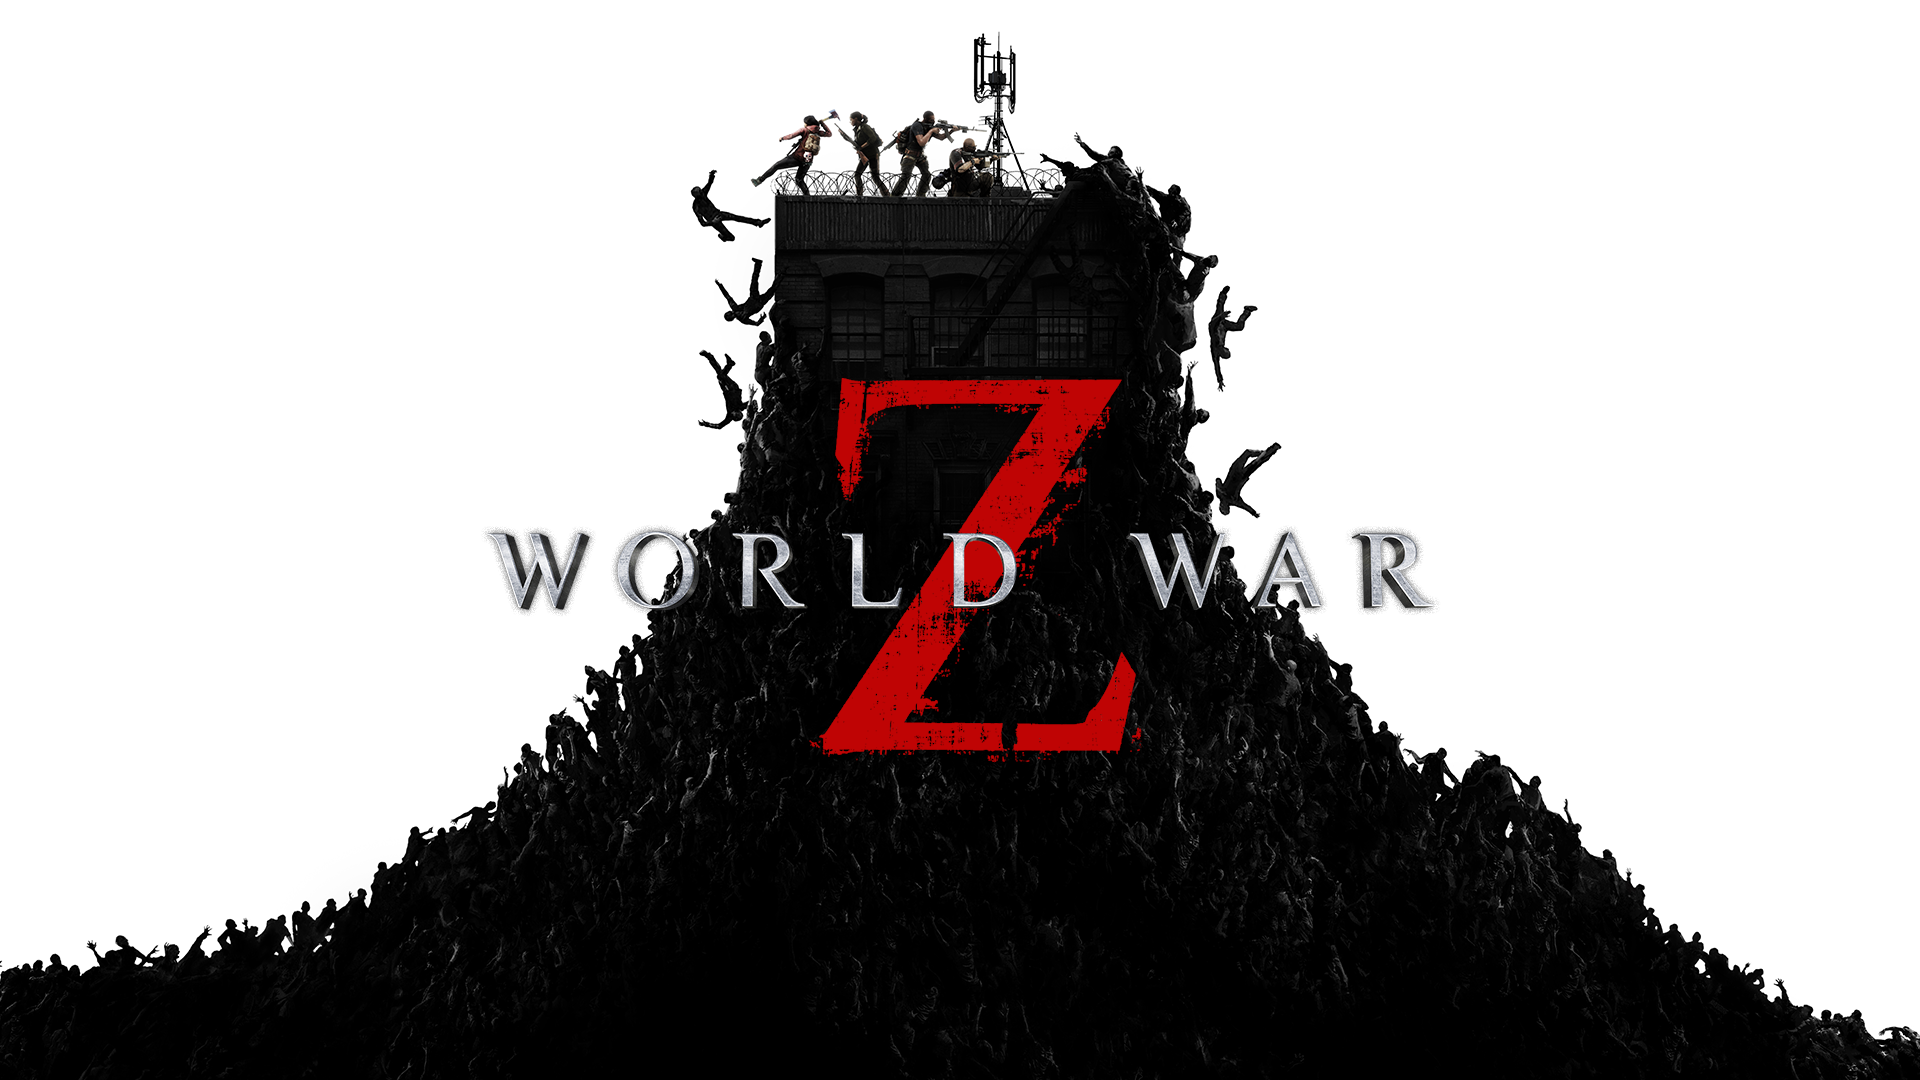 World War Z, Figment, Tormentor x Punisher free on Epic Games Store - VG247